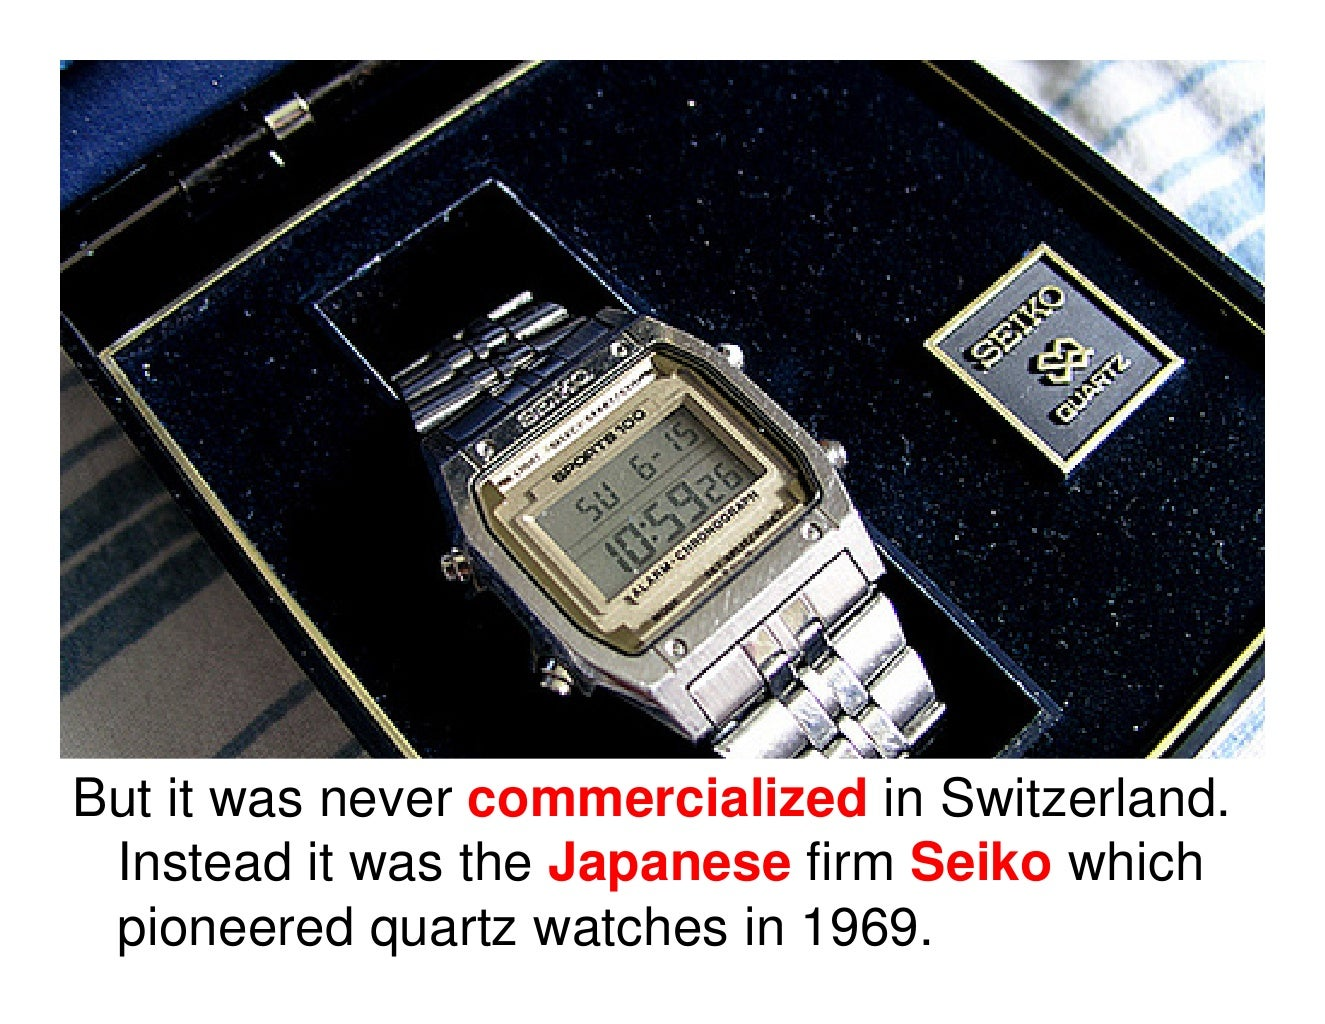 rebirth of swiss watch industry hbr The quartz crisis is a term used in the watchmaking industry to refer to the  economic upheavals caused by the advent of quartz watches in the 1970s and  early 1980s, which largely replaced mechanical watches it caused a decline of  the swiss watchmaking industry, which chose to  the renaissance, the swatch,  and the future of timekeeping[edit.